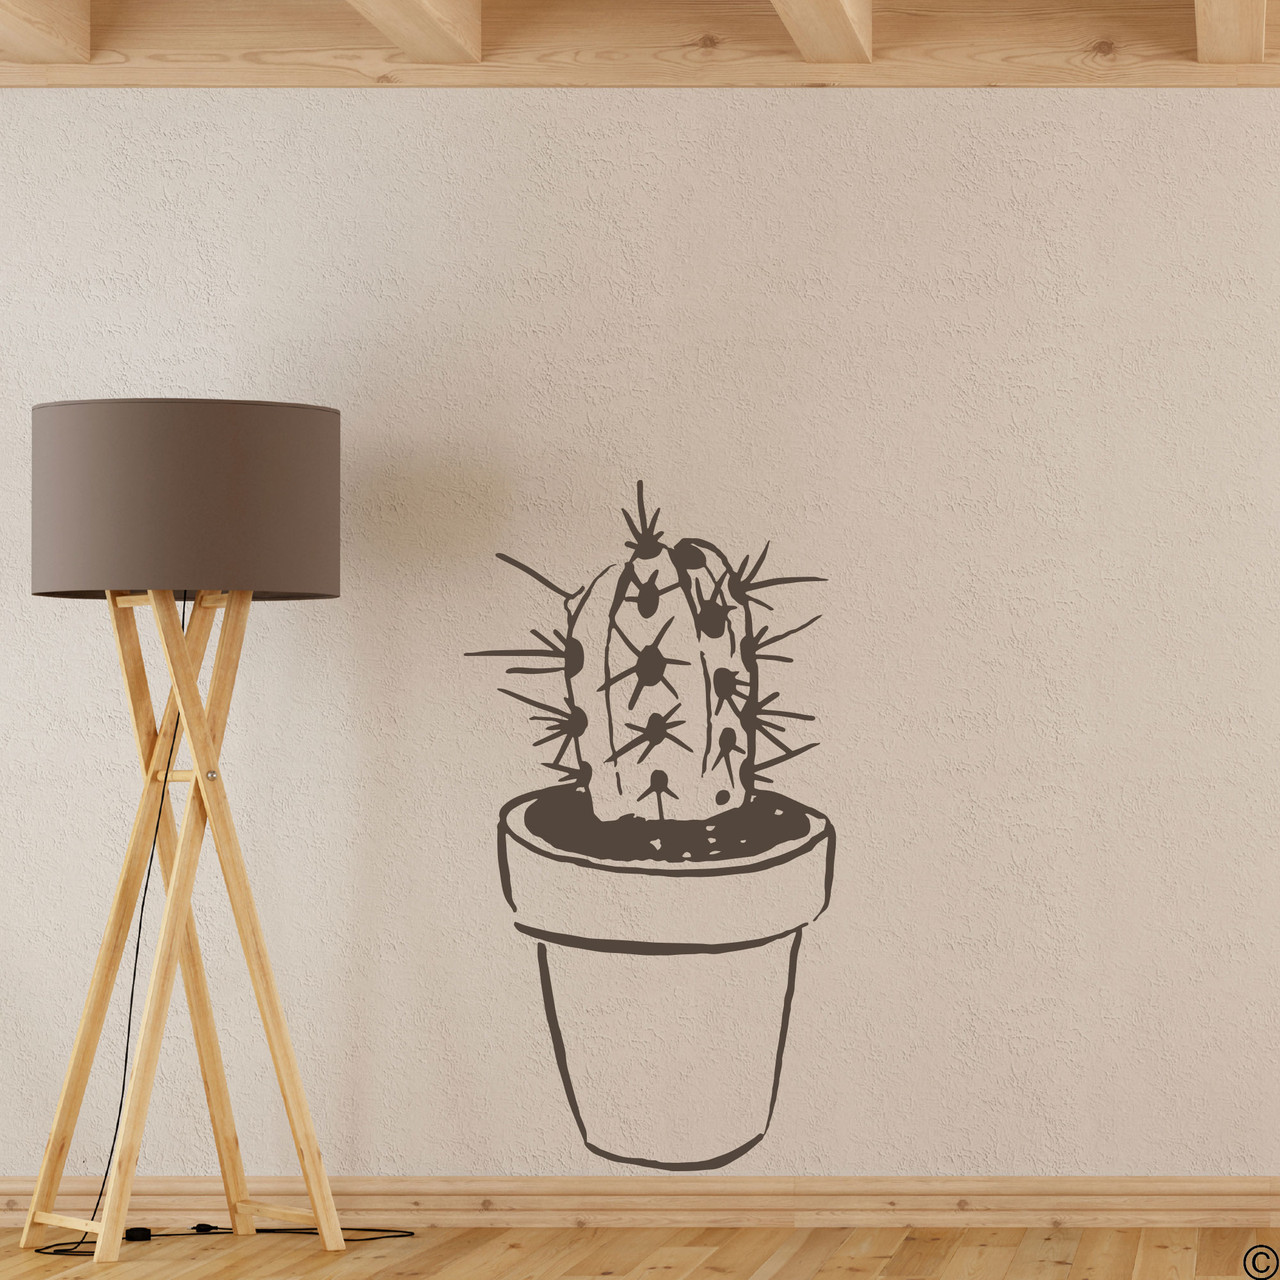 The hand drawn potted cactus wall decal in brown vinyl color.